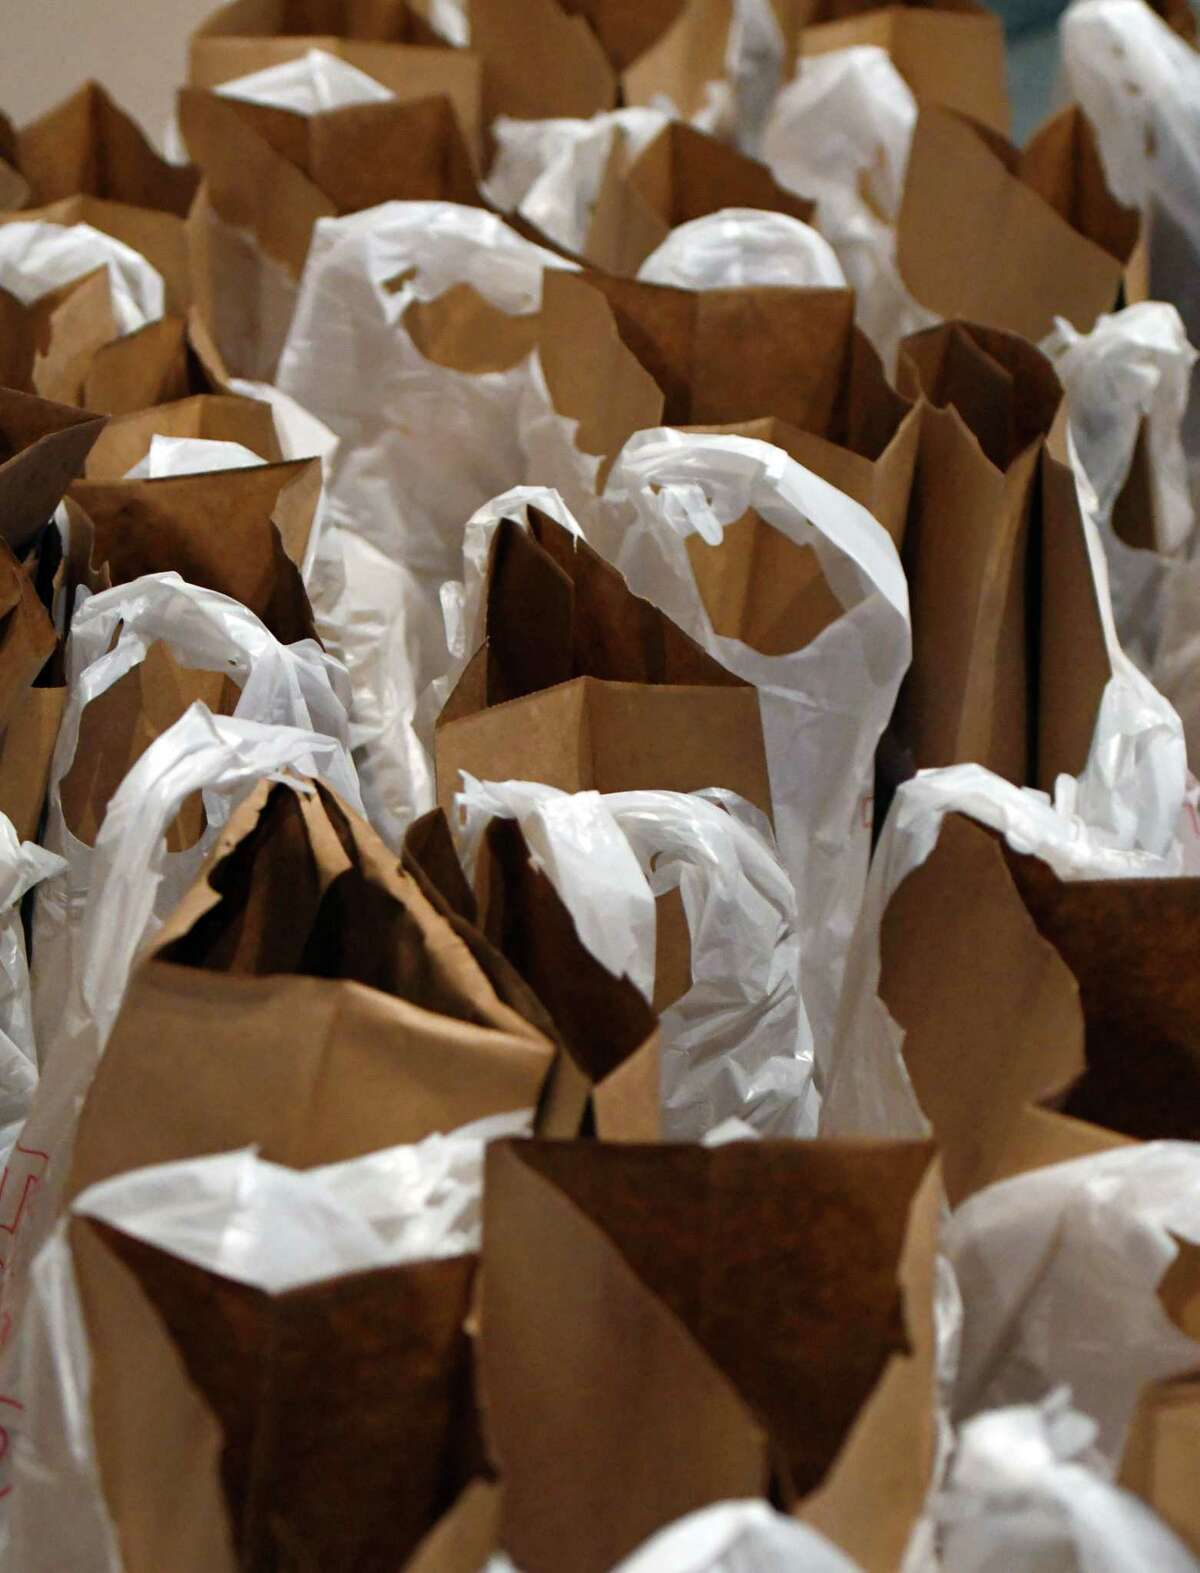 Bags are lined up for Focus Churches volunteers to fill with food to deliver to the elderly Thursday, Feb. 21, 2019 at Emmanuel Baptist in Albany, NY. (Phoebe Sheehan/Times Union)